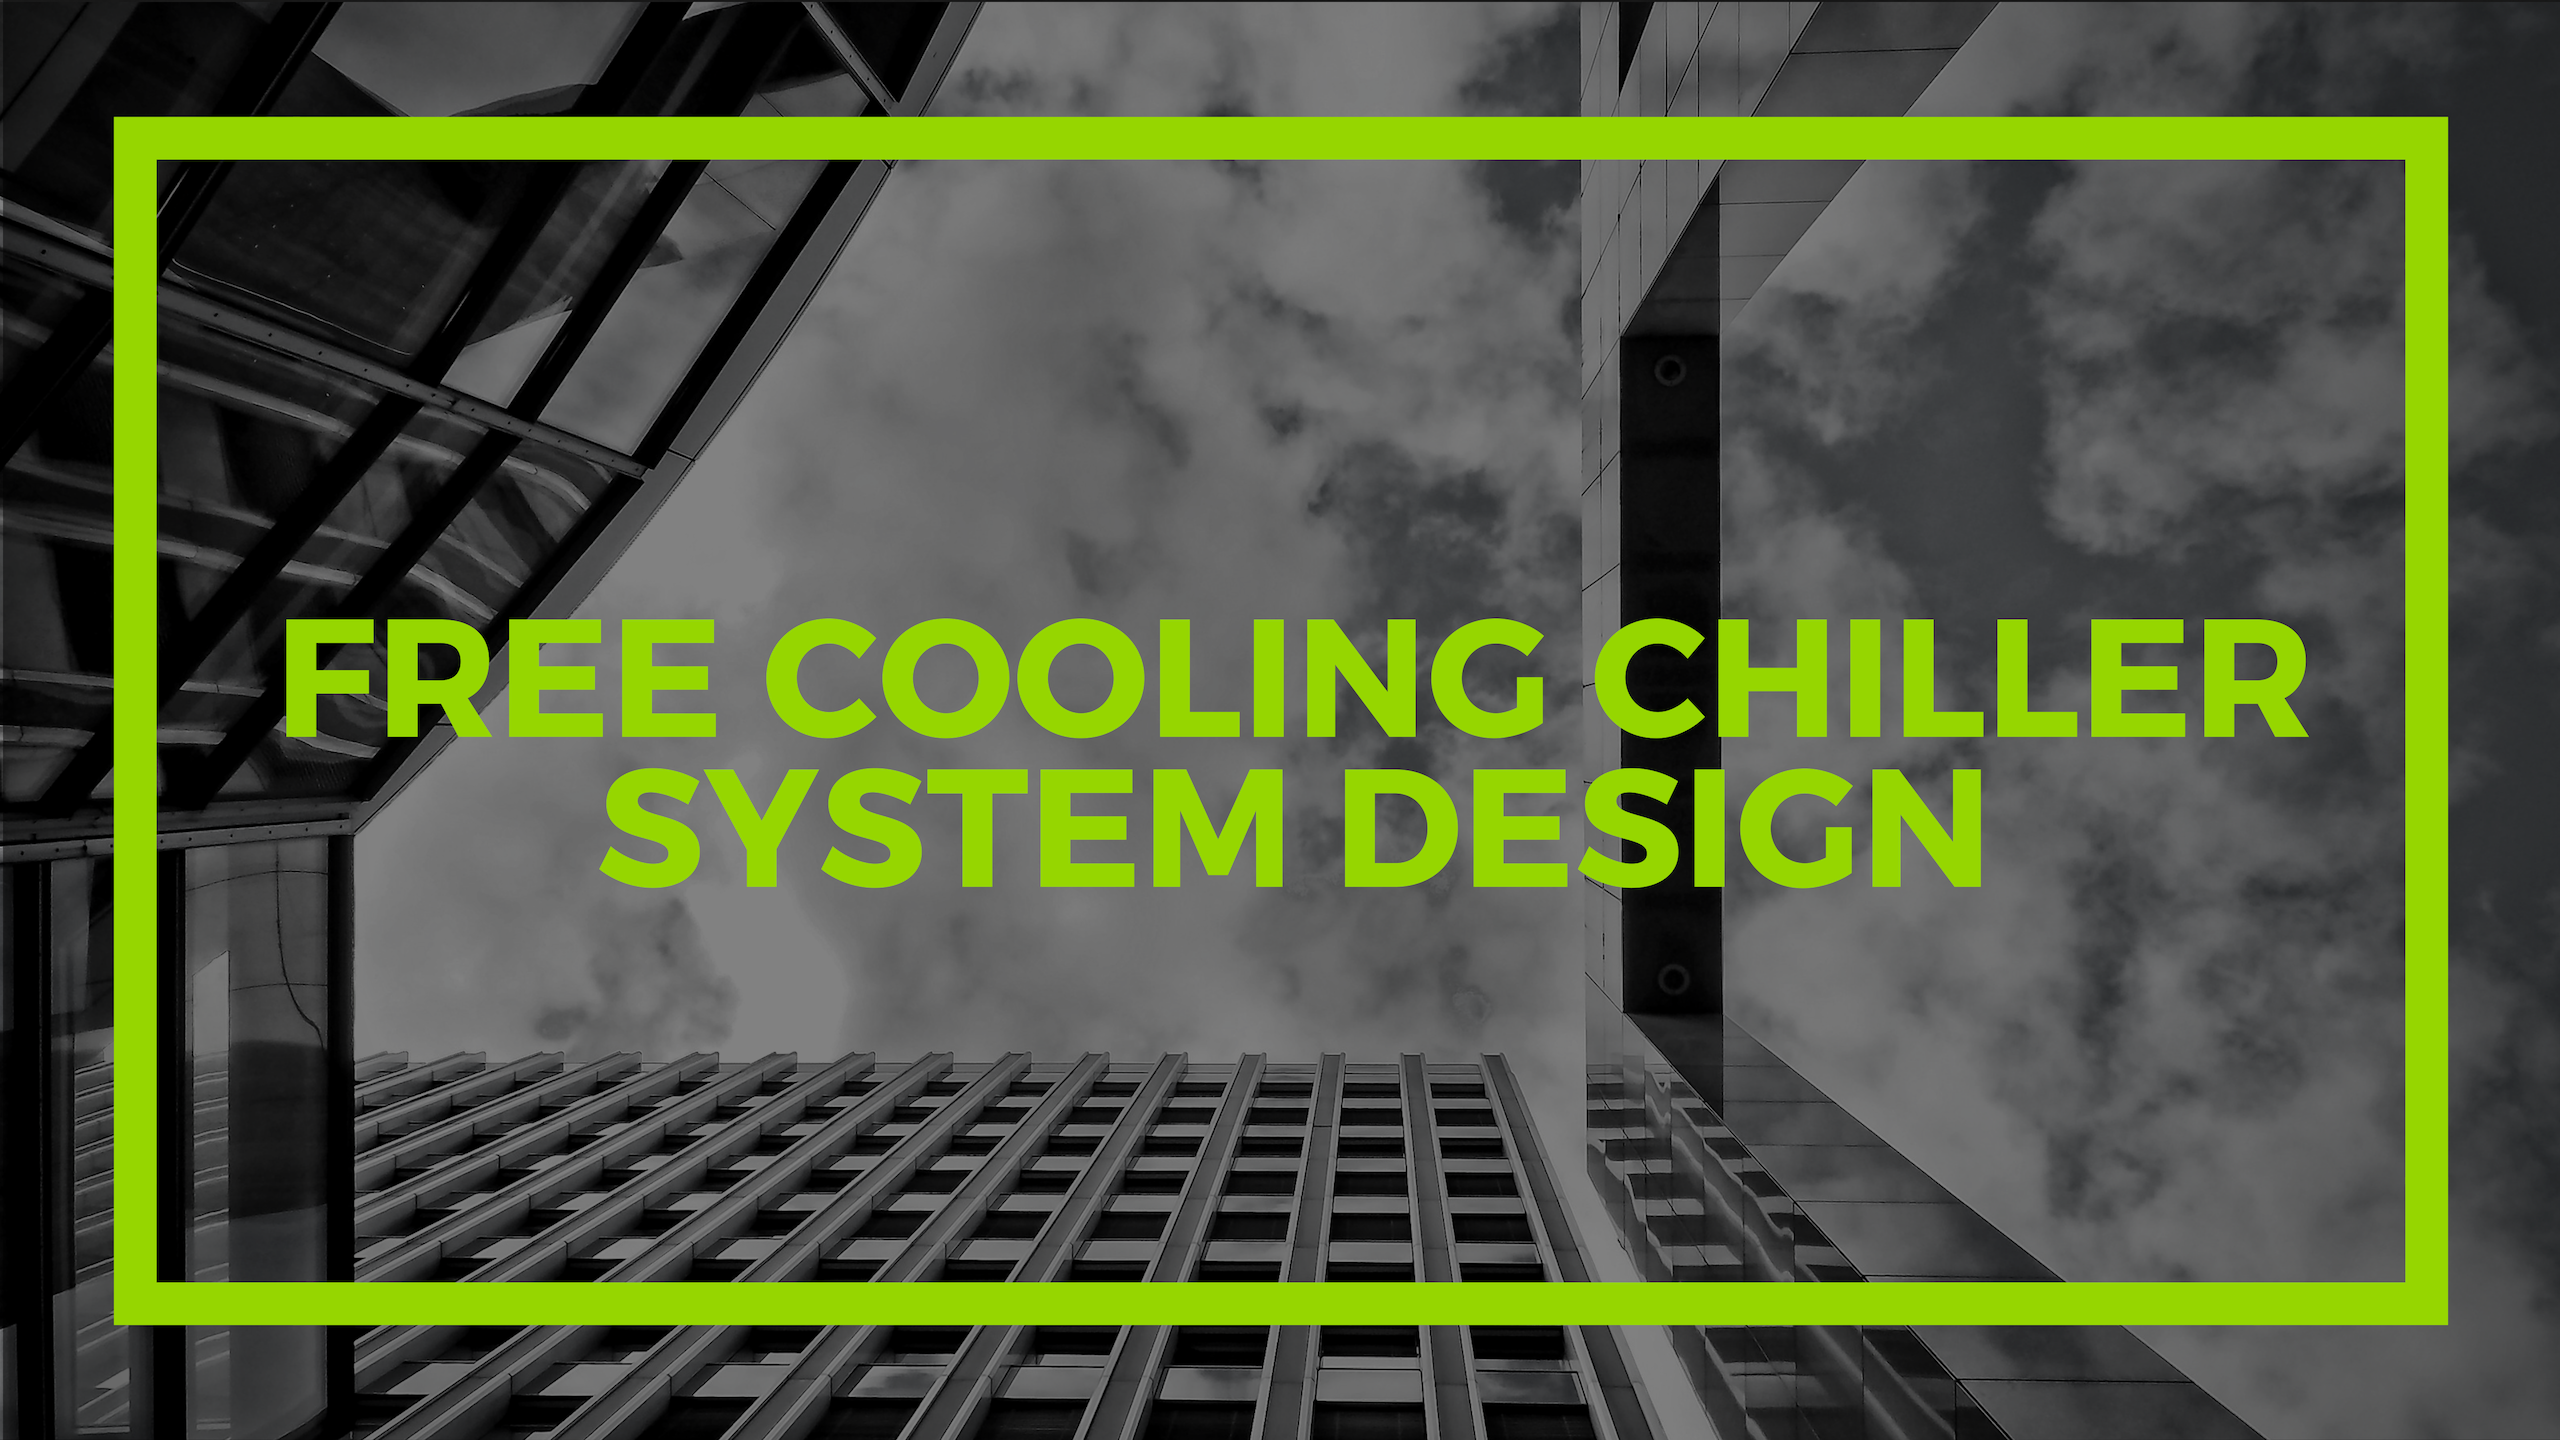 About Aermec Freecooling System Design